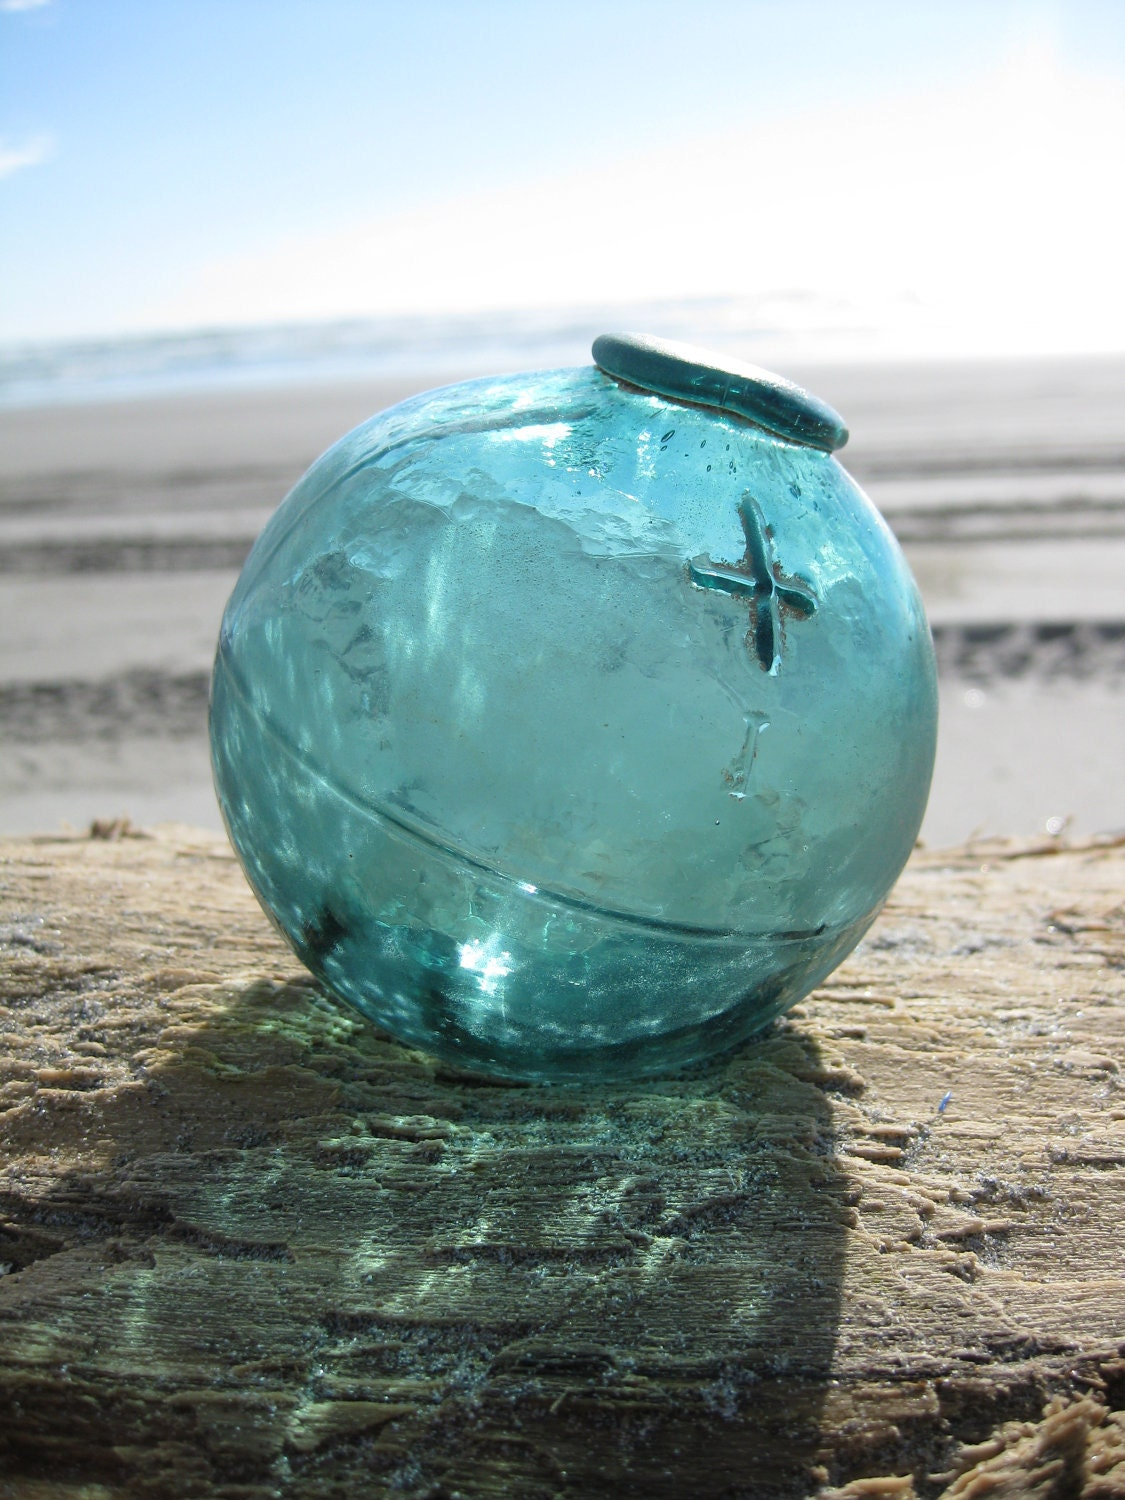 Authentic piece mold glass fishing float teal blue alaska